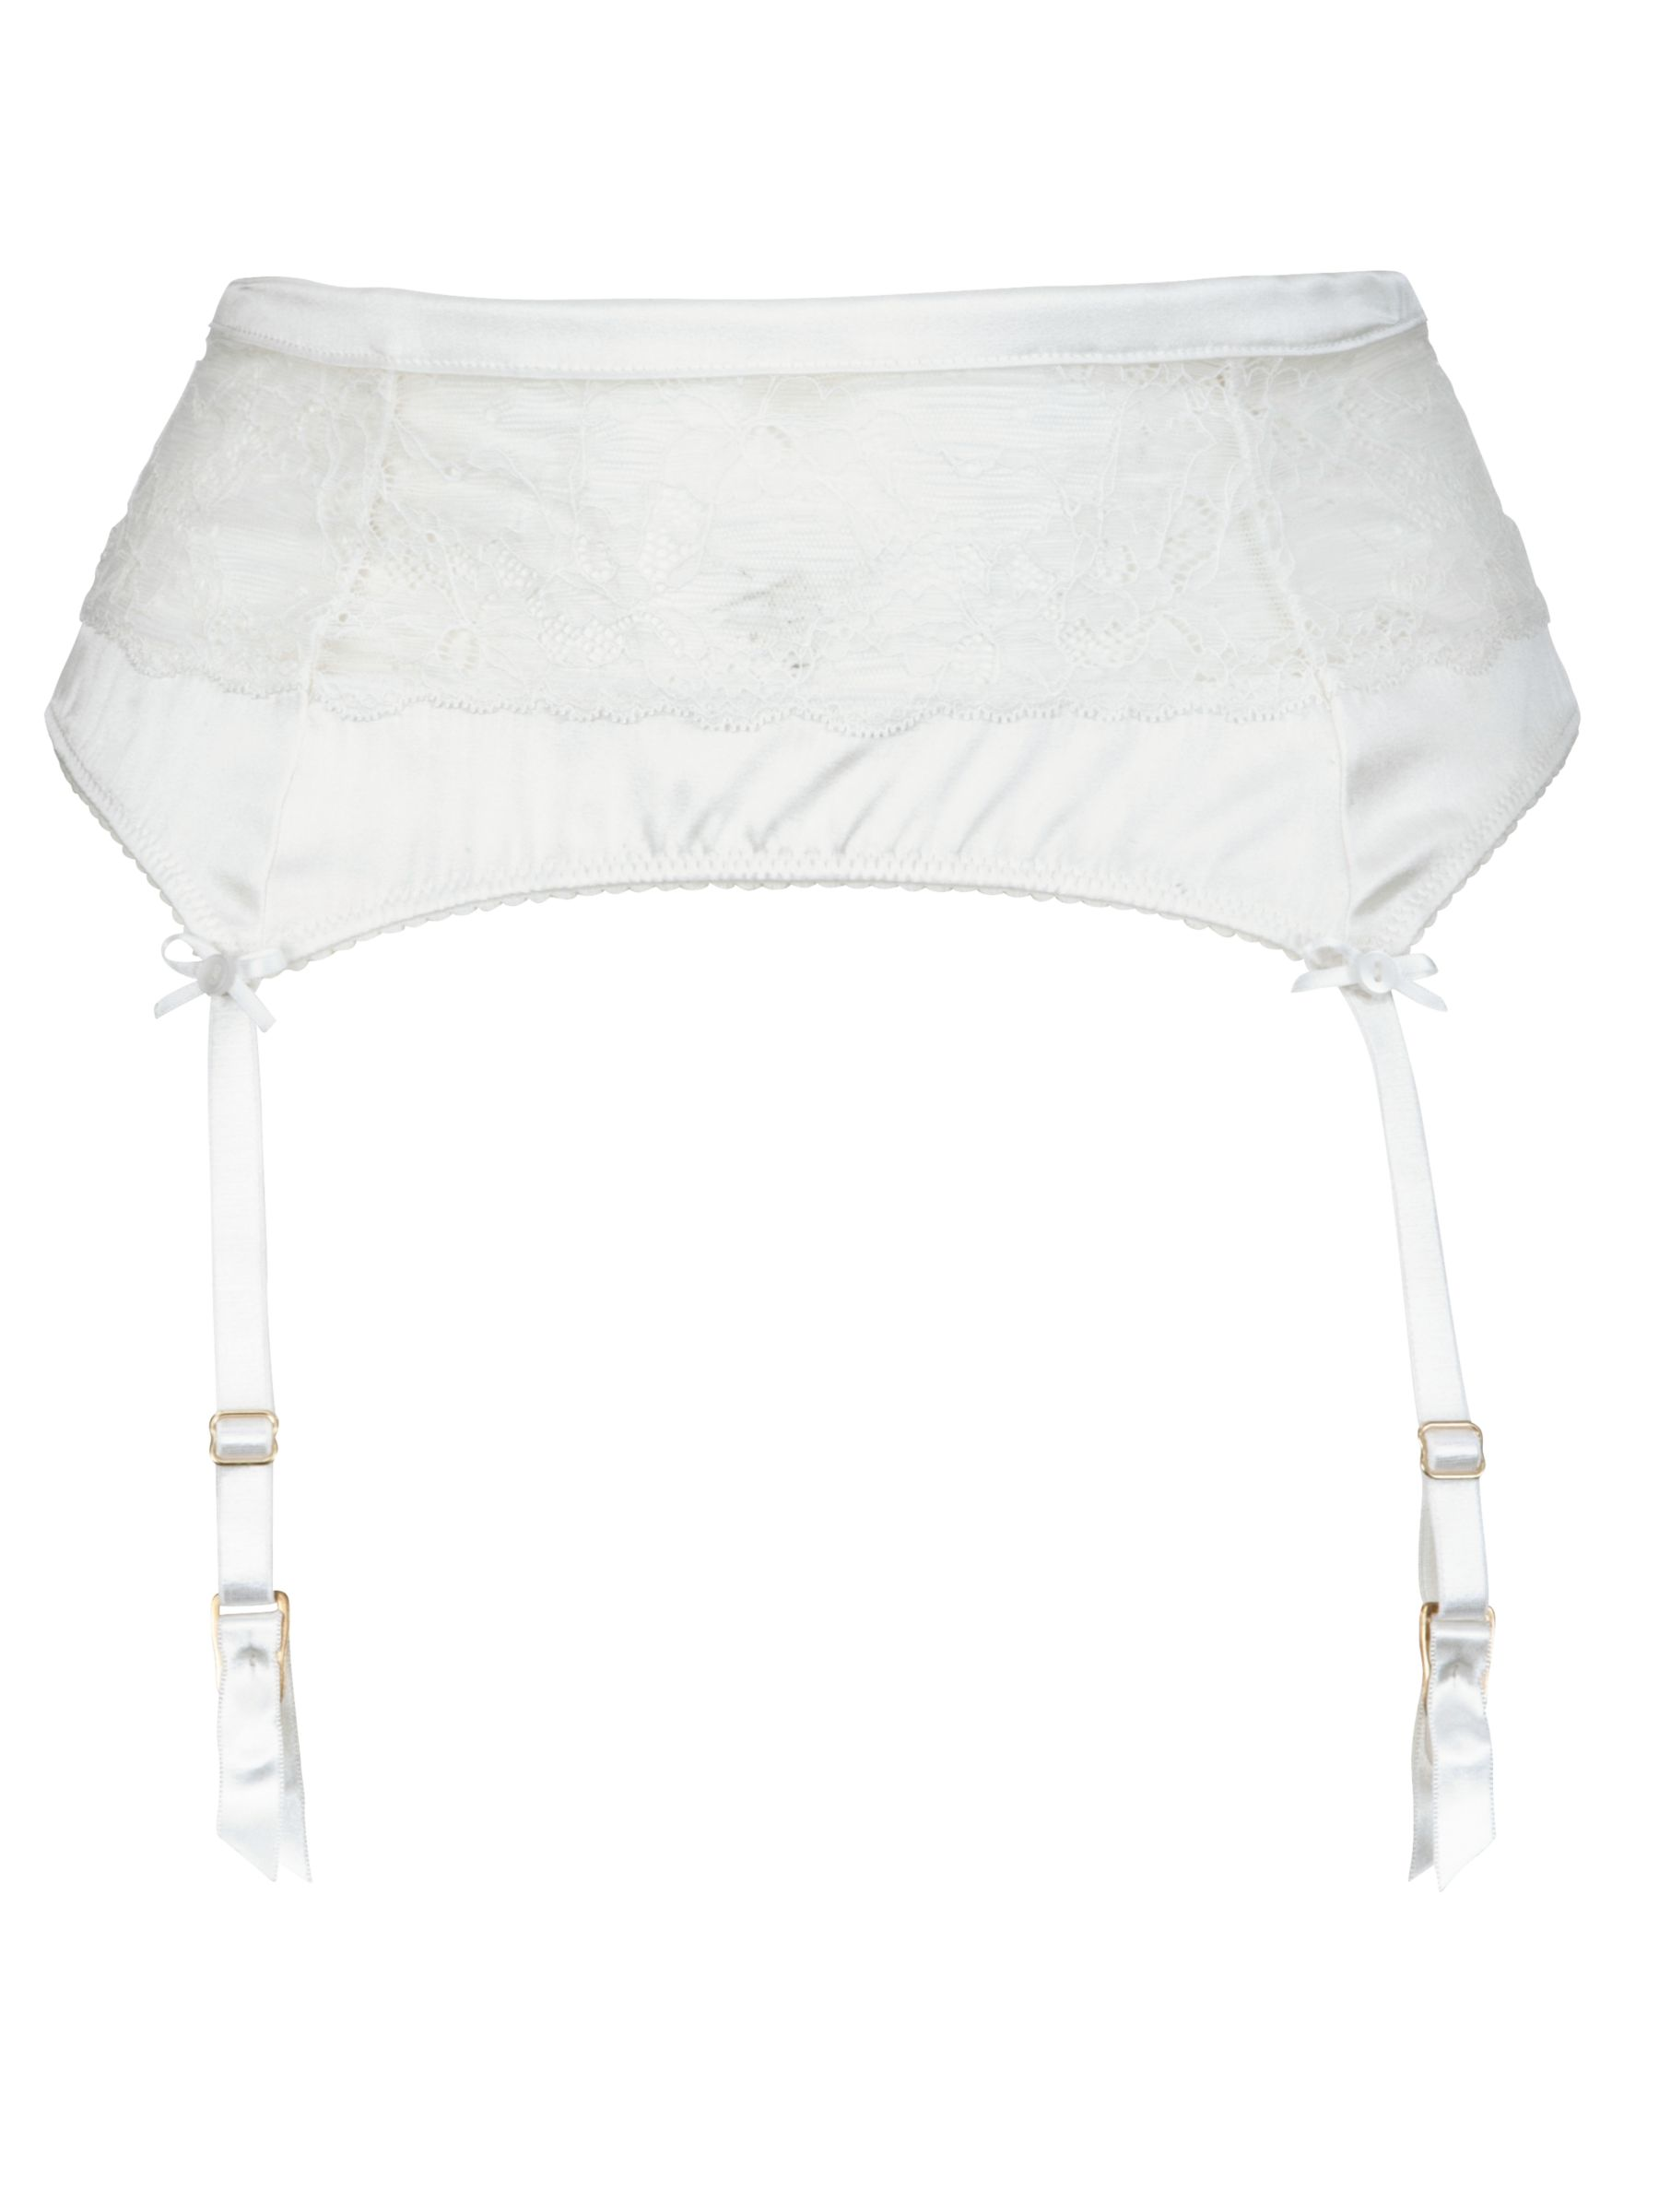 COLLECTION by John Lewis Bridal Fiona Suspender Belt, Ivory